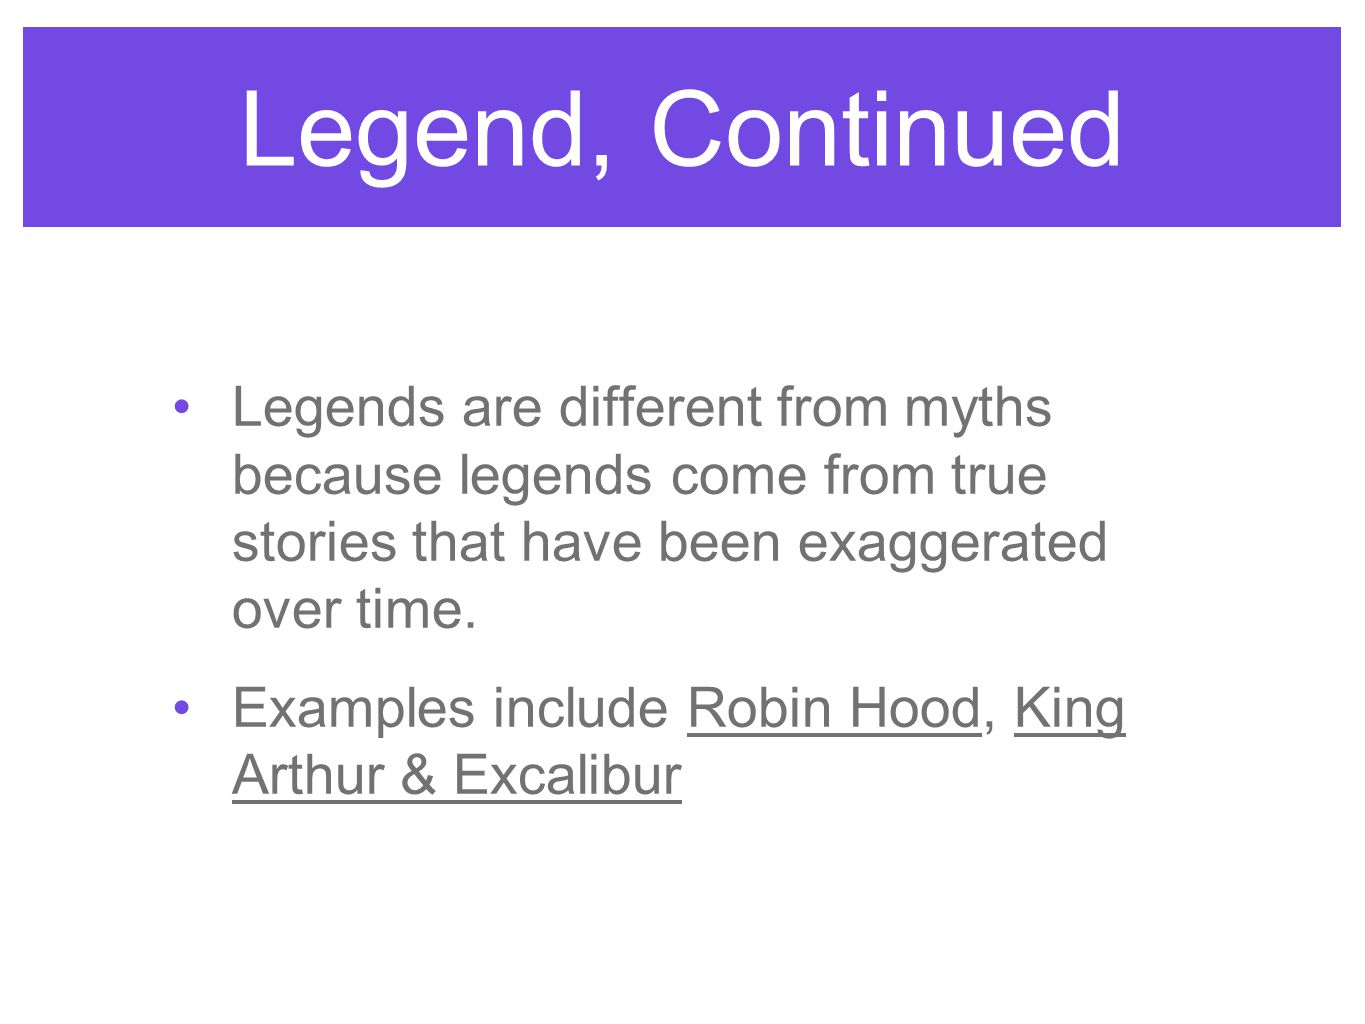 Legend, Continued Legends are different from myths because legends come from true stories that have been exaggerated over time.